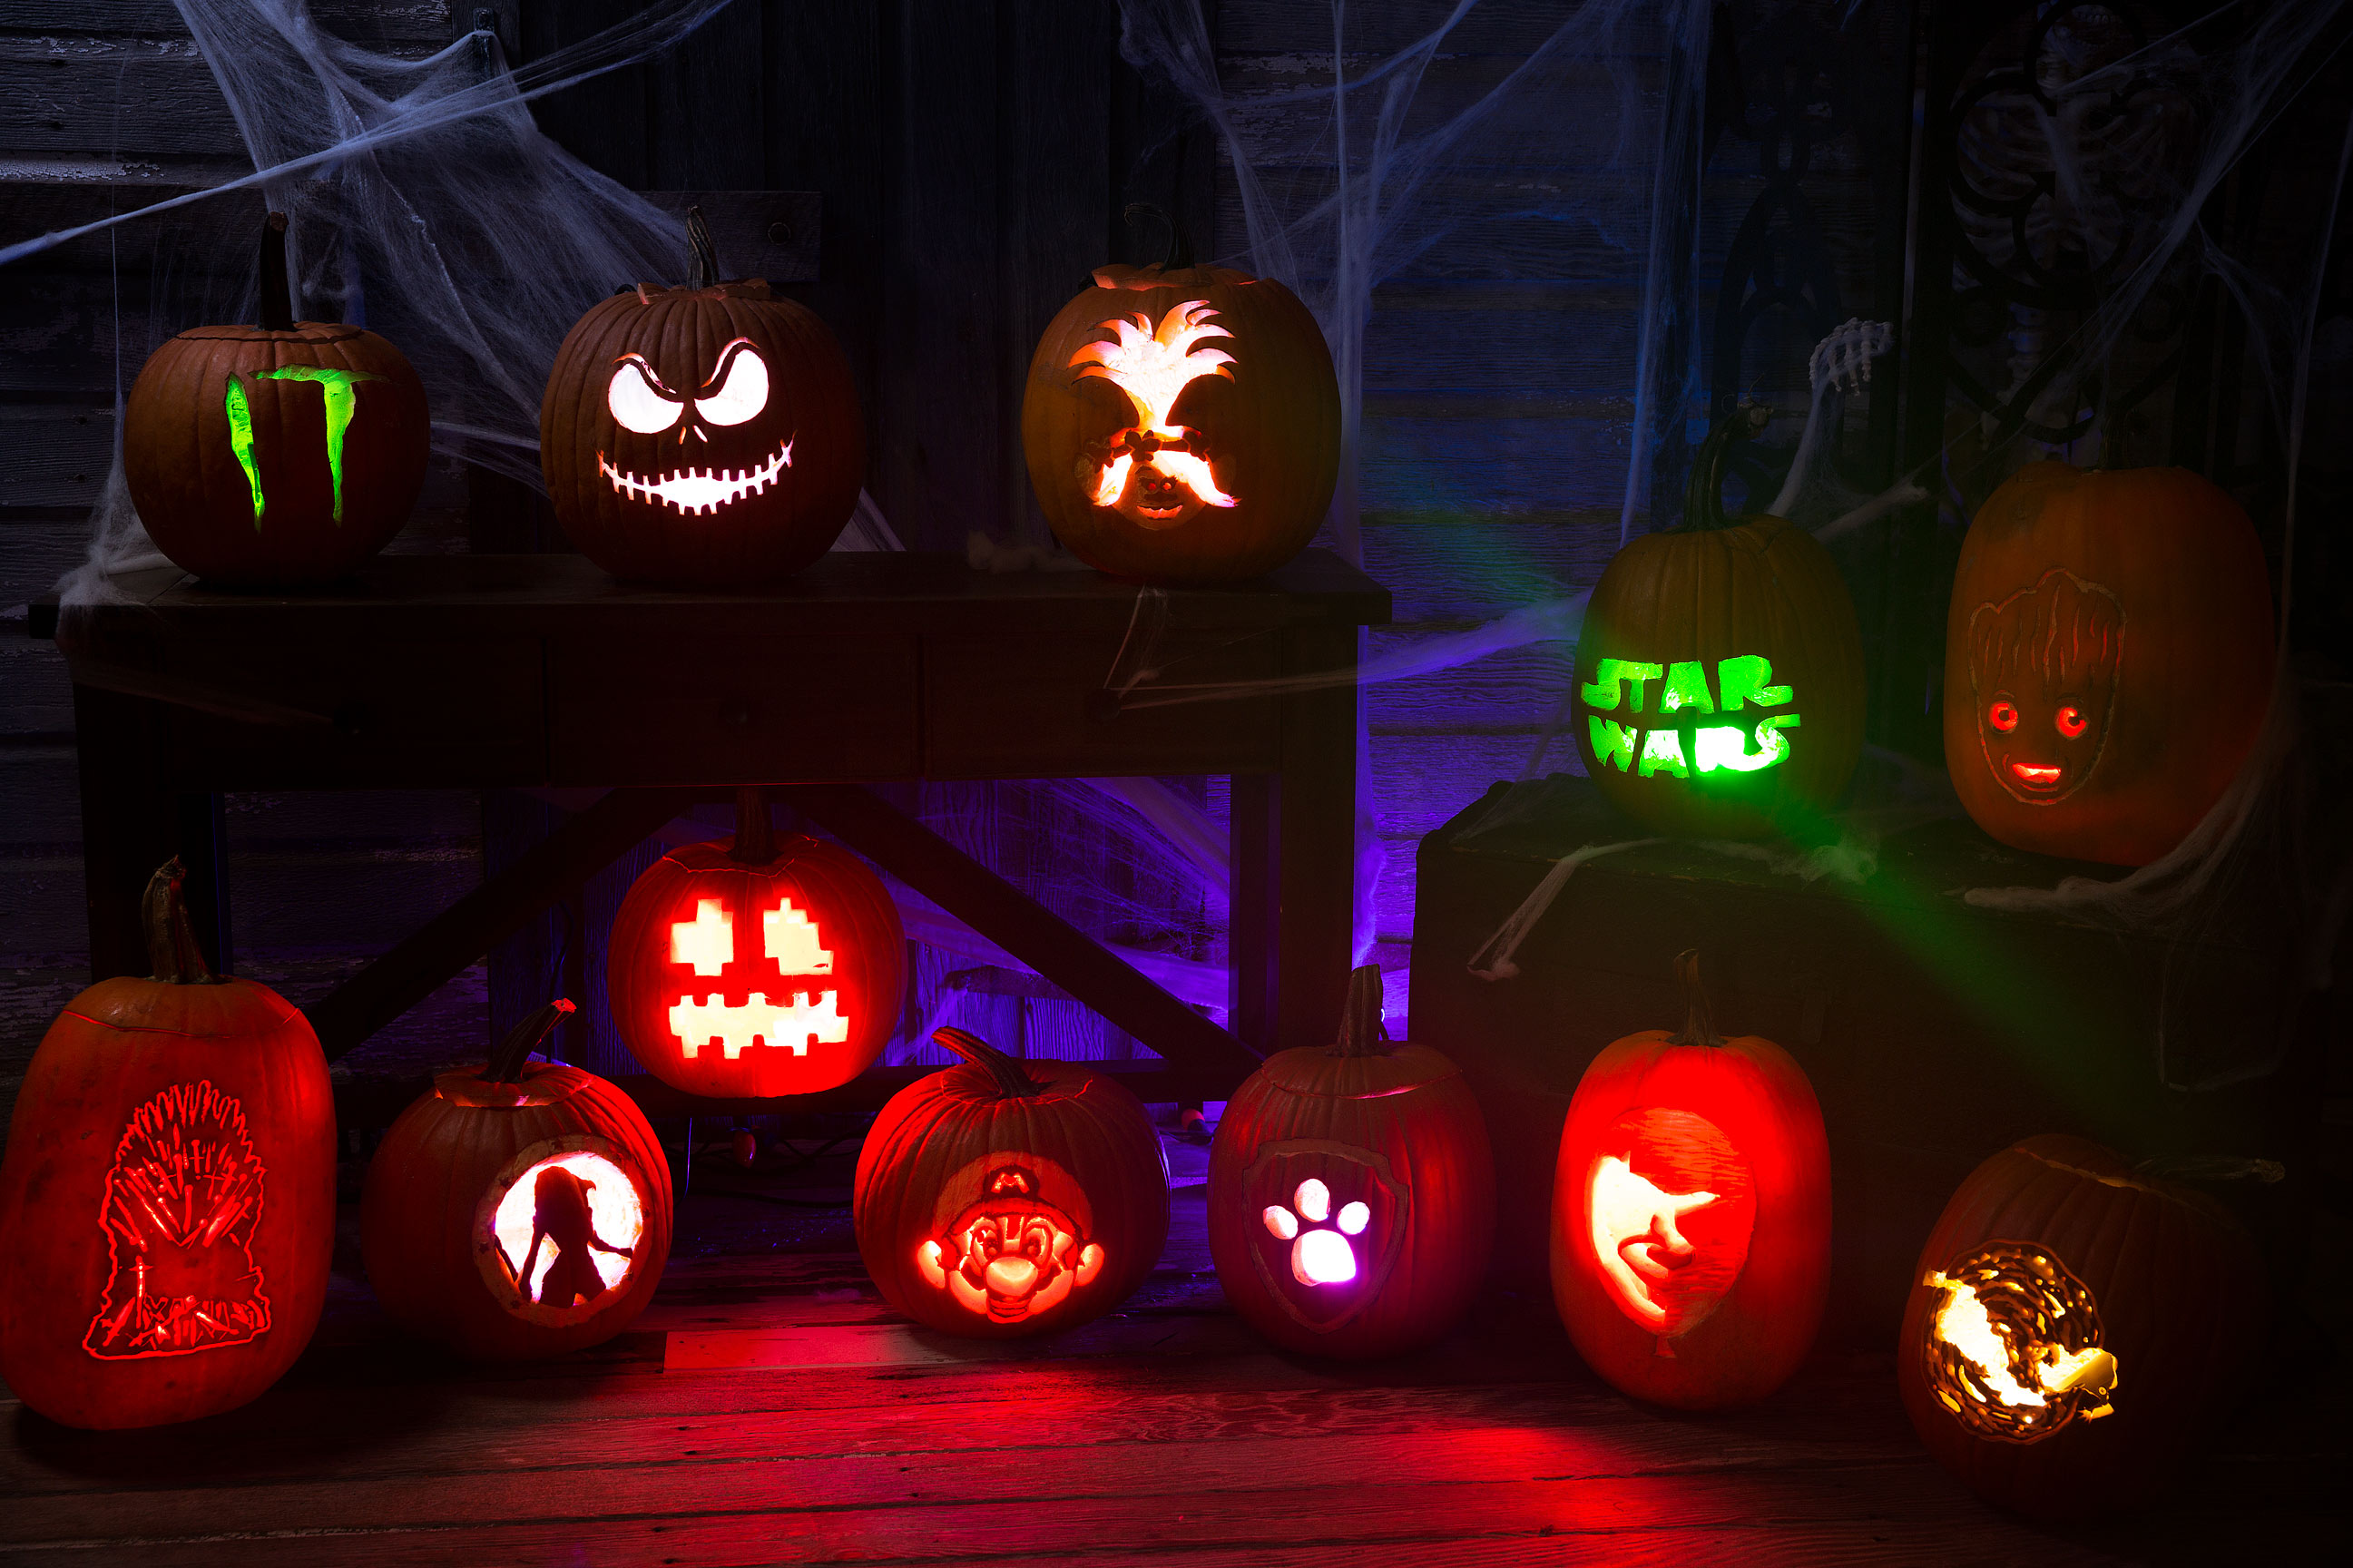 This Week in Making: Geeky Pumpkins, DIY Video Game Console, and Halloween Projects